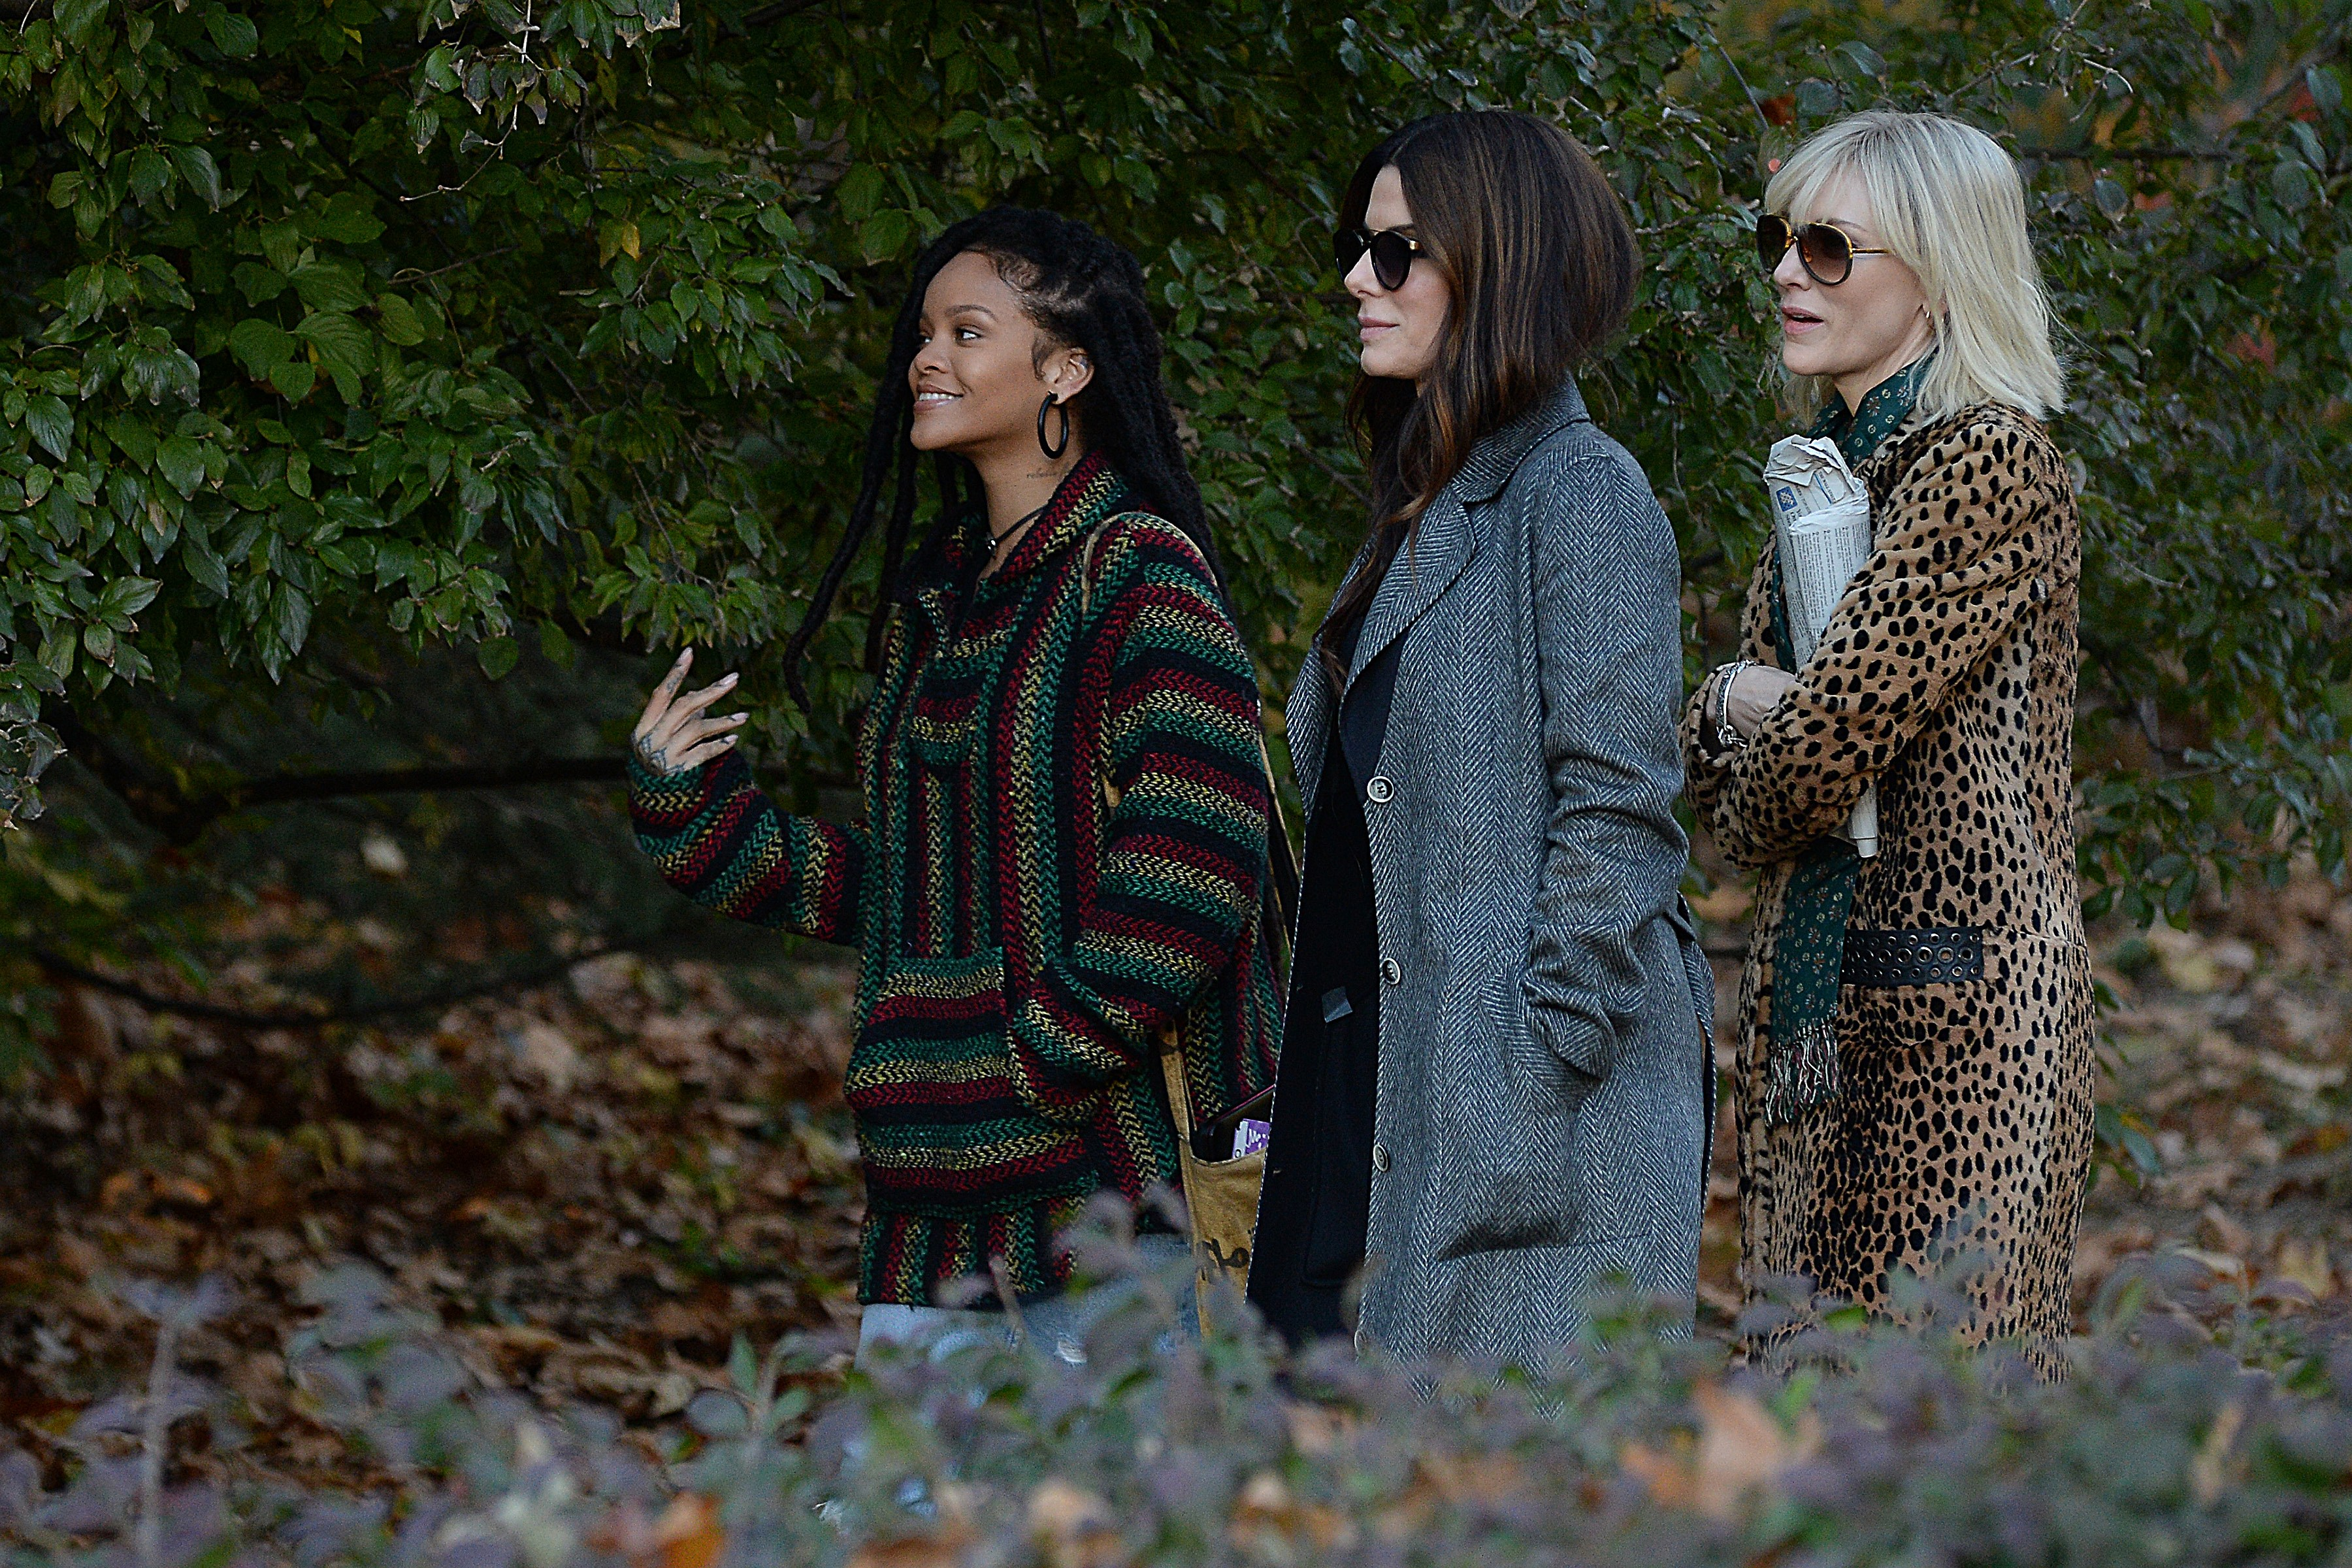 Photo © 2016 Splash News/The Grosby Group New York, November 07, 2016 Pop star turned actress, Rihanna, on-set with veteran actresses, Cate Blanchett and Sandra Bullock, in NYC. The trio are currently in the works on Ocean's Eight which also stars, Sandra Bullock, Sarah Paulson, and Helena Bonham Carter.